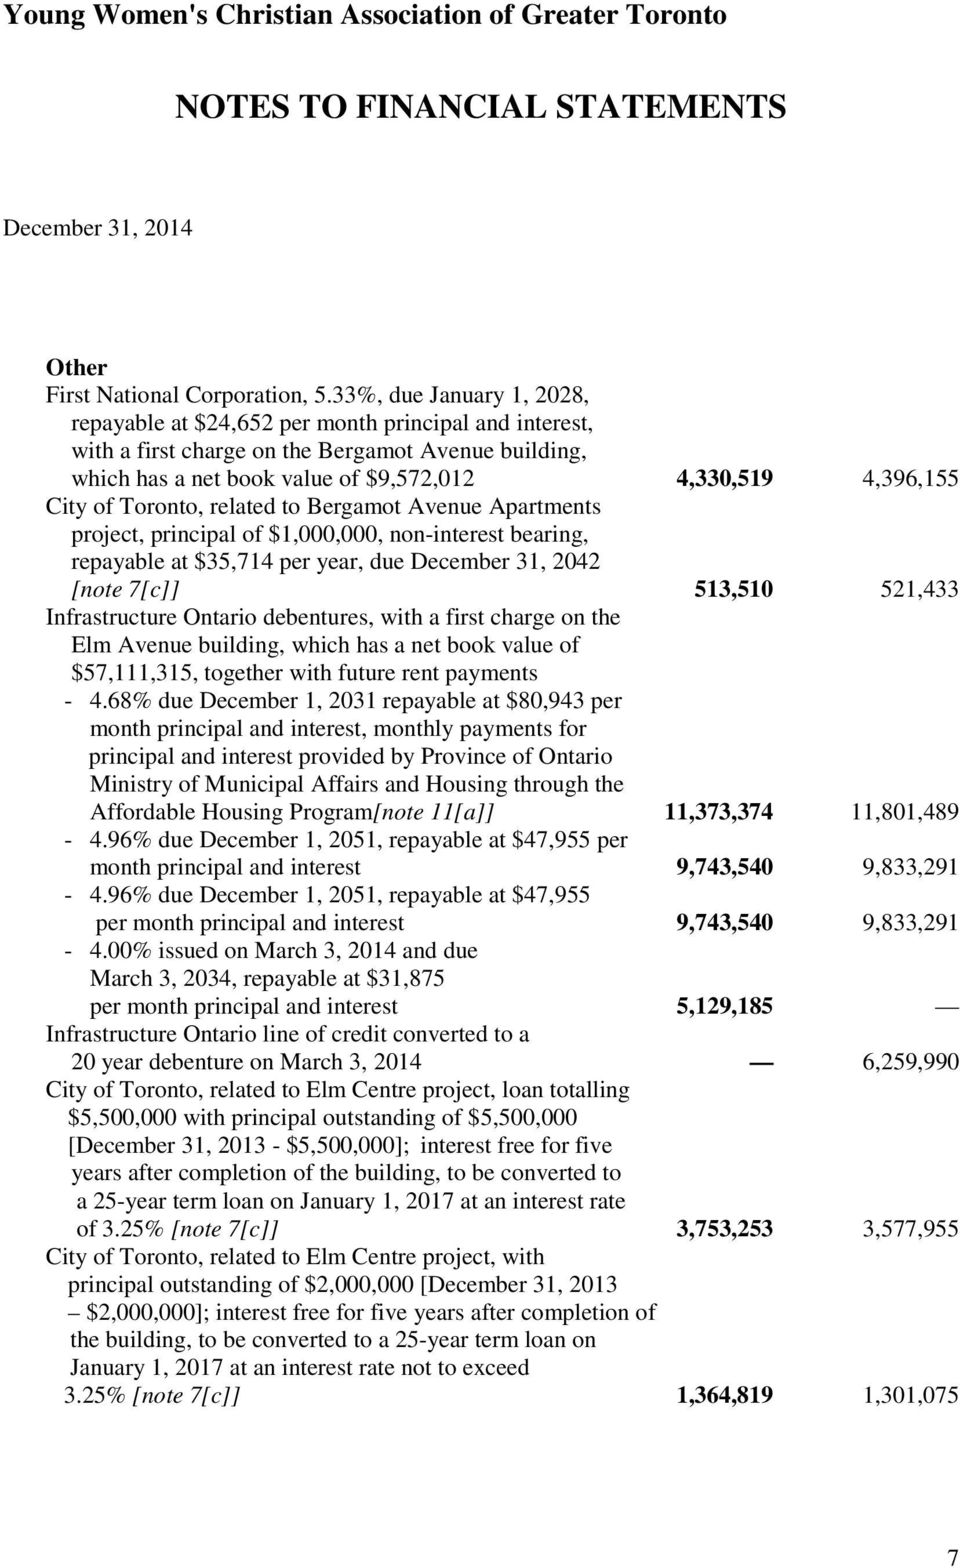 of Toronto, related to Bergamot Avenue Apartments project, principal of $1,000,000, non-interest bearing, repayable at $35,714 per year, due December 31, 2042 [note 7[c]] 513,510 521,433